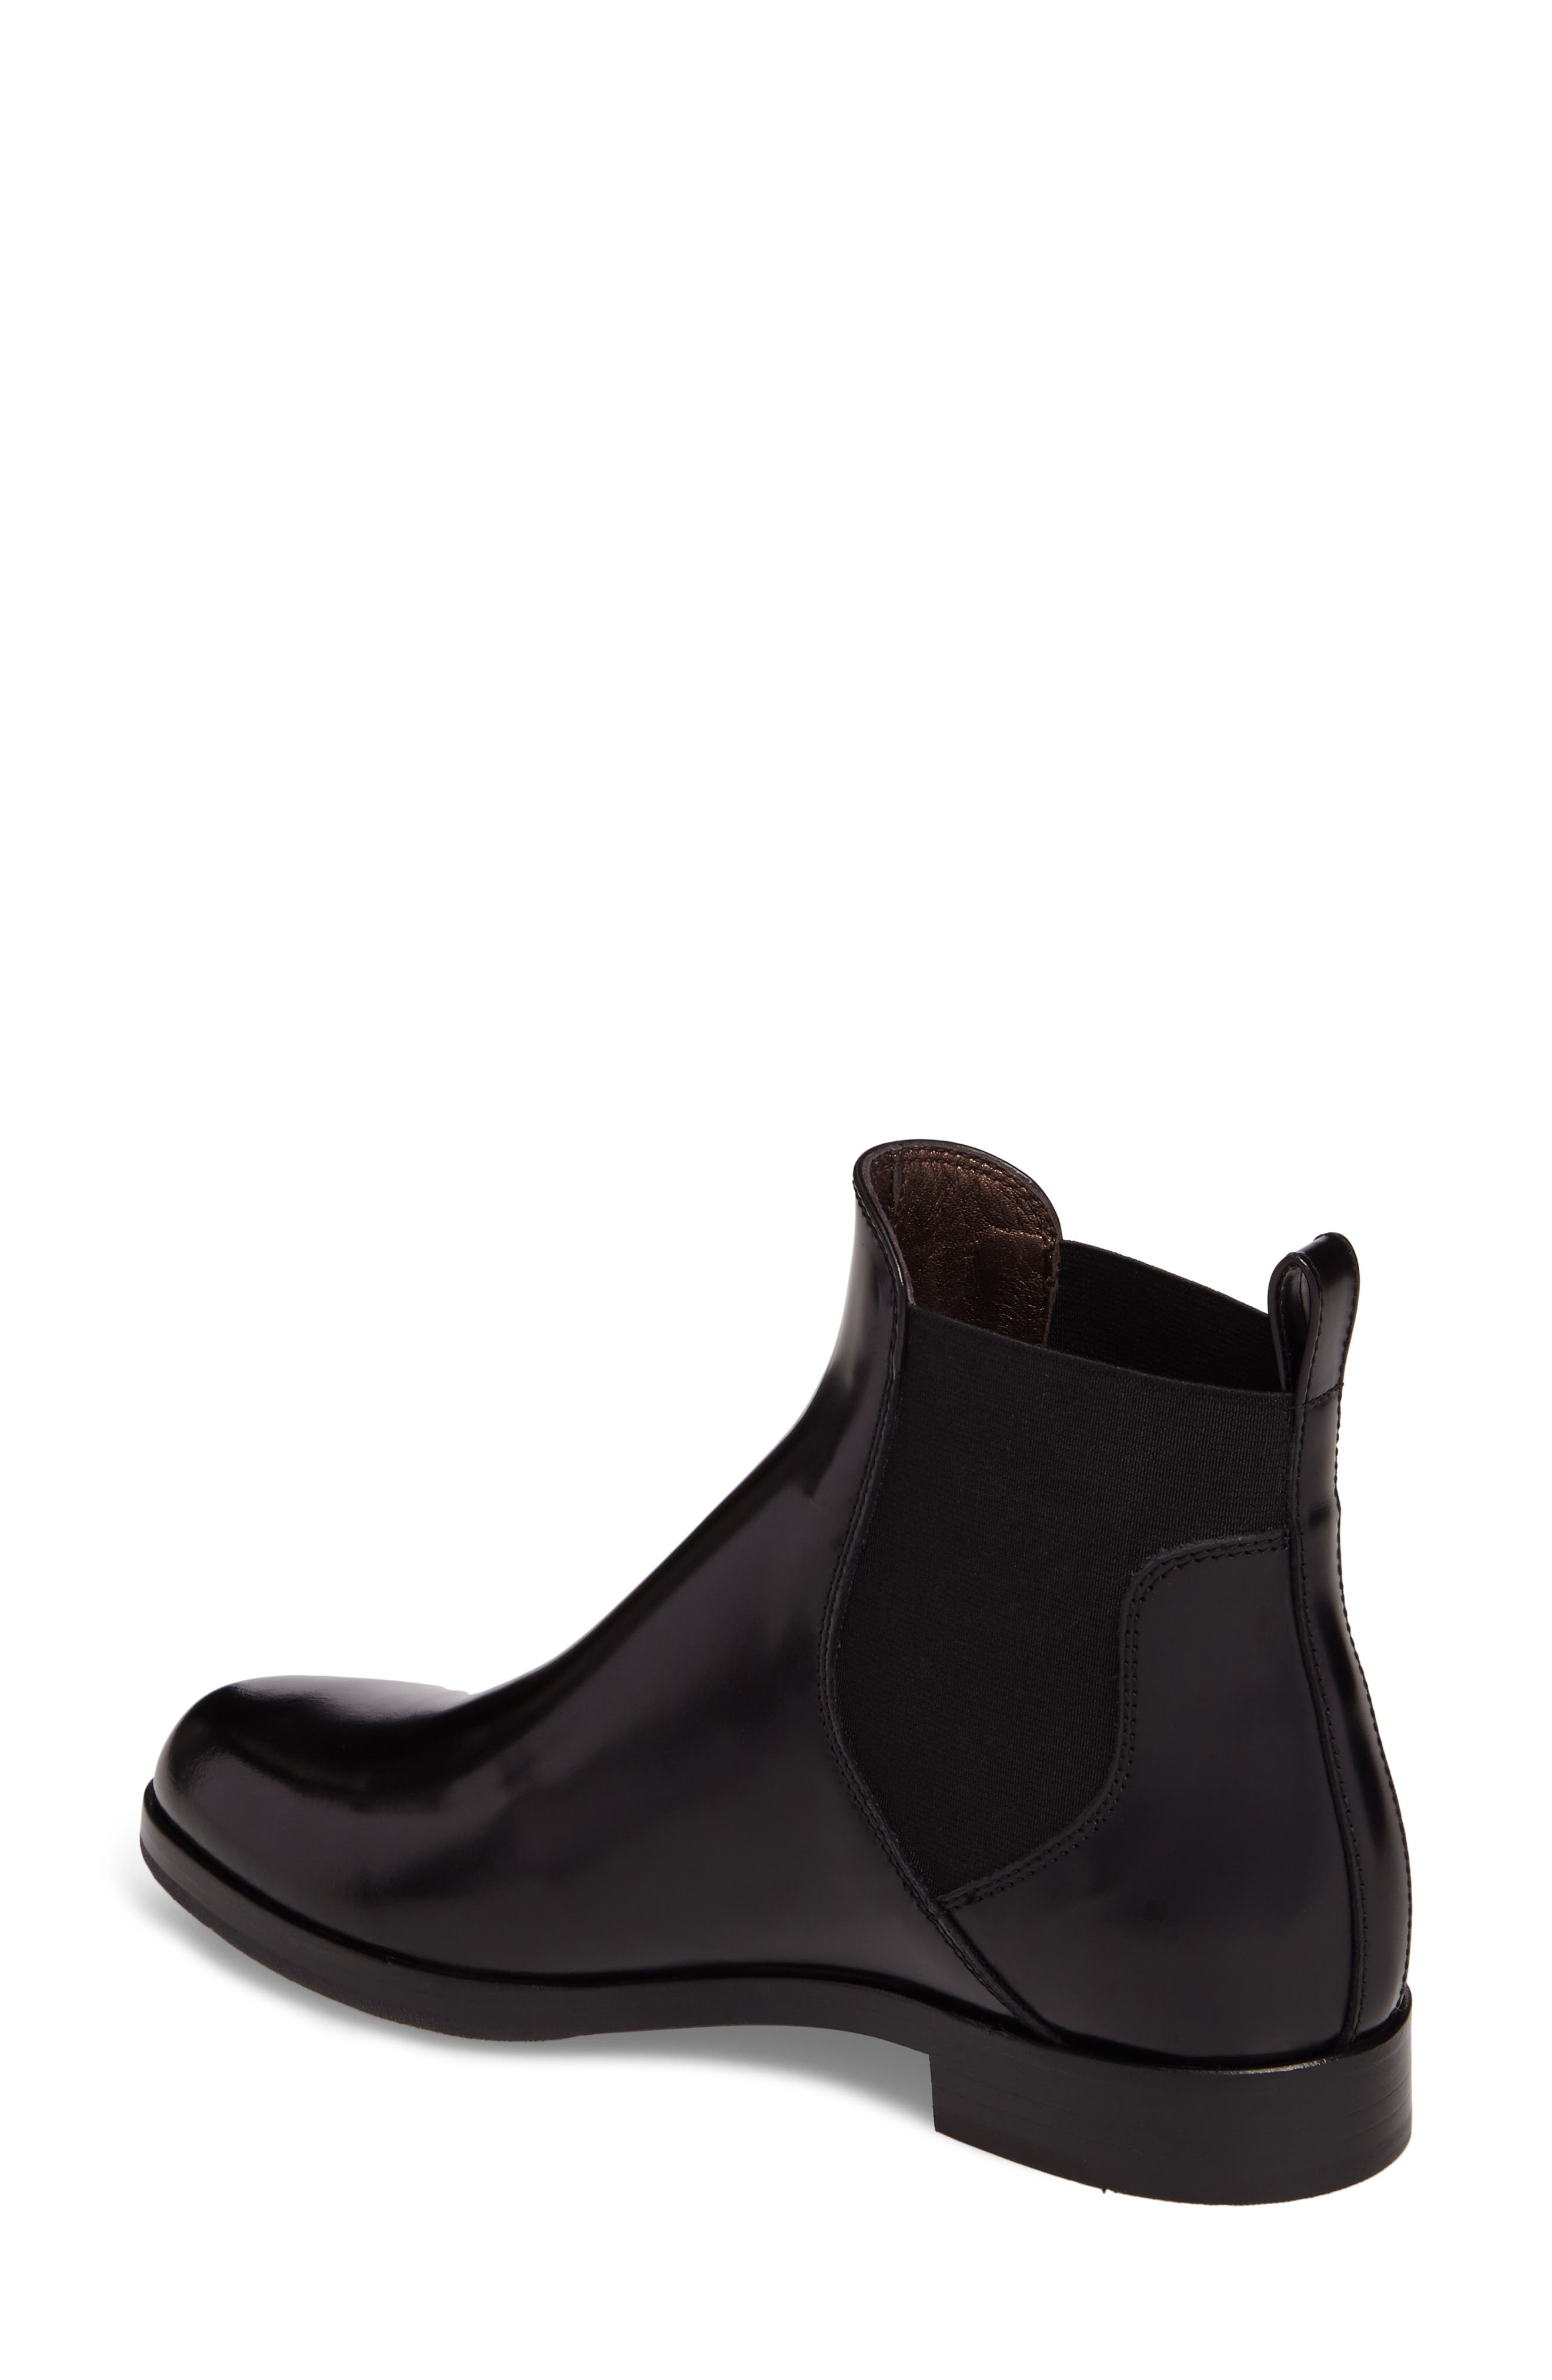 Gored Bootie,                             Alternate thumbnail 2, color,                             001